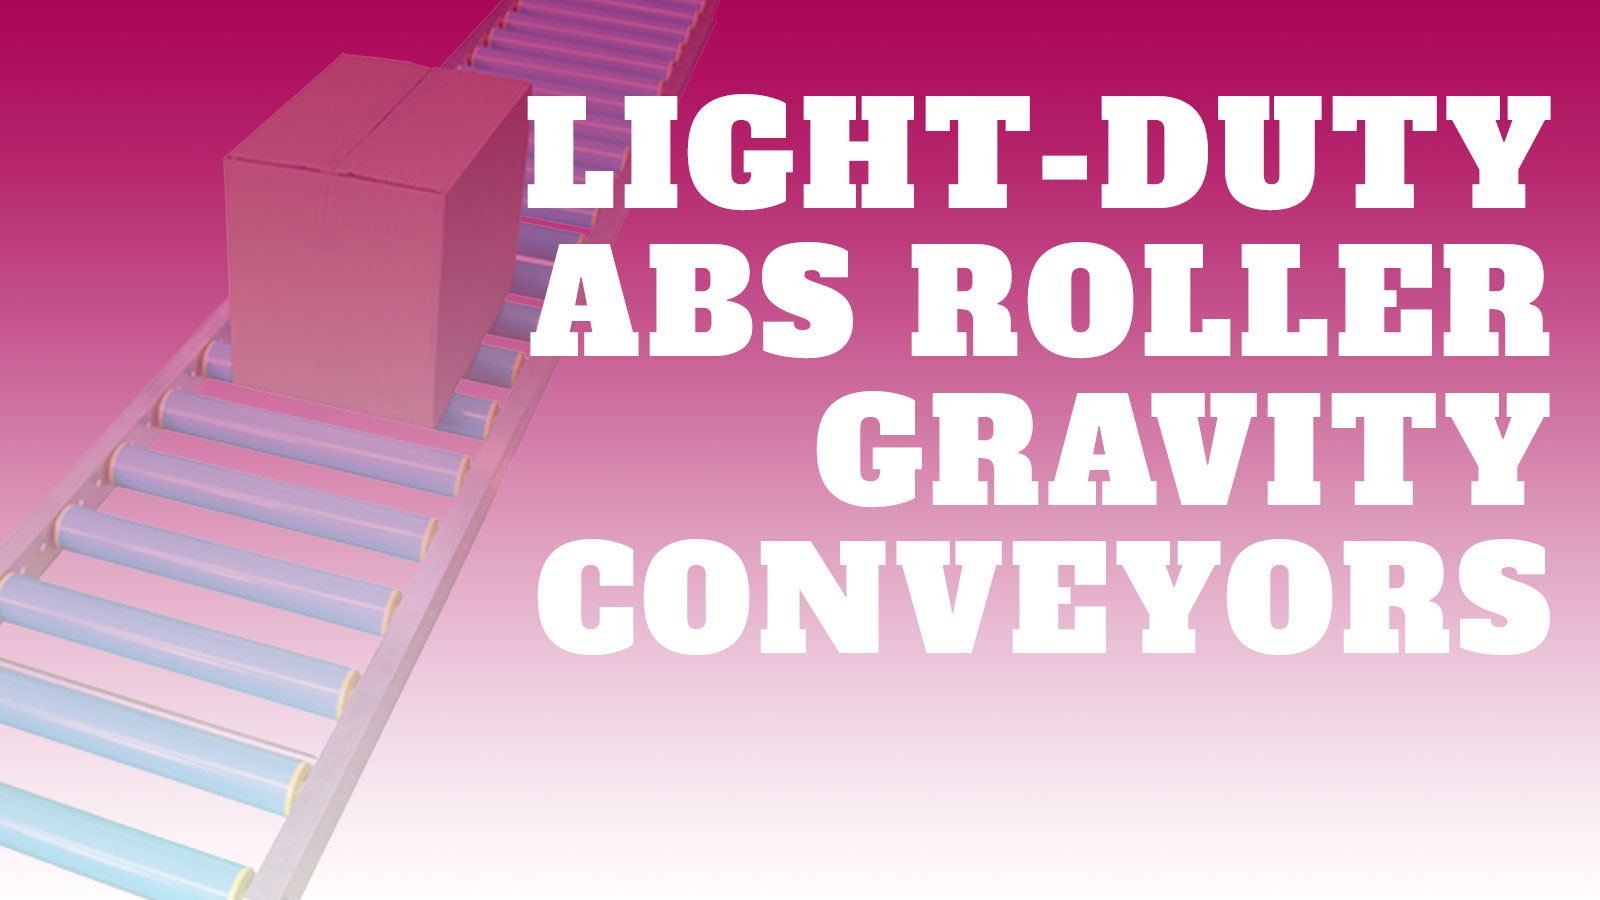 Conveyor-Light-Duty-ABS-Rollers